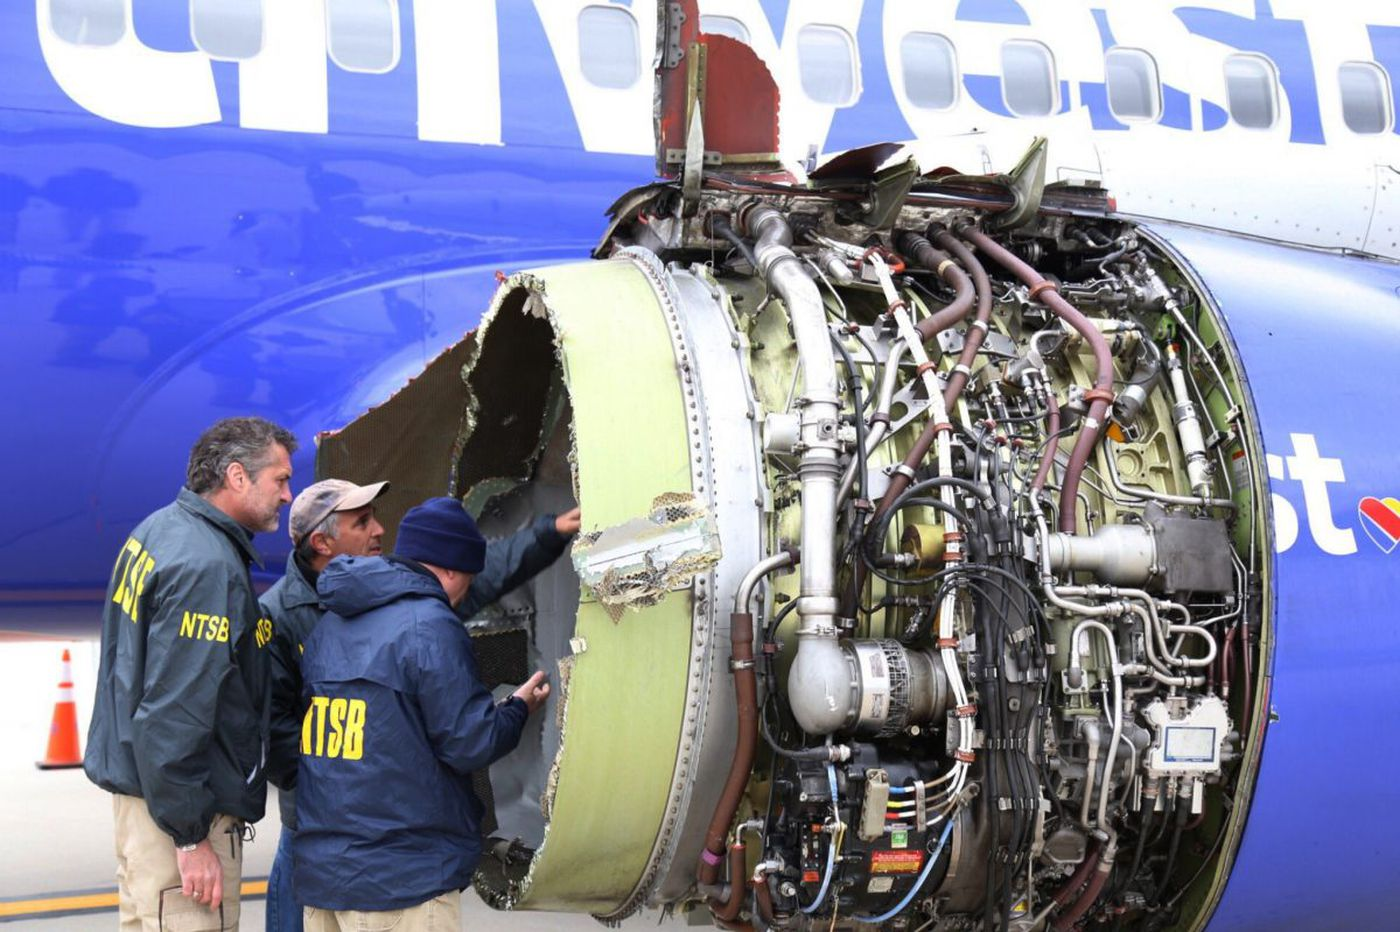 Southwest wanted more time for inspections to spot engine flaws like the one that killed a woman Tuesday